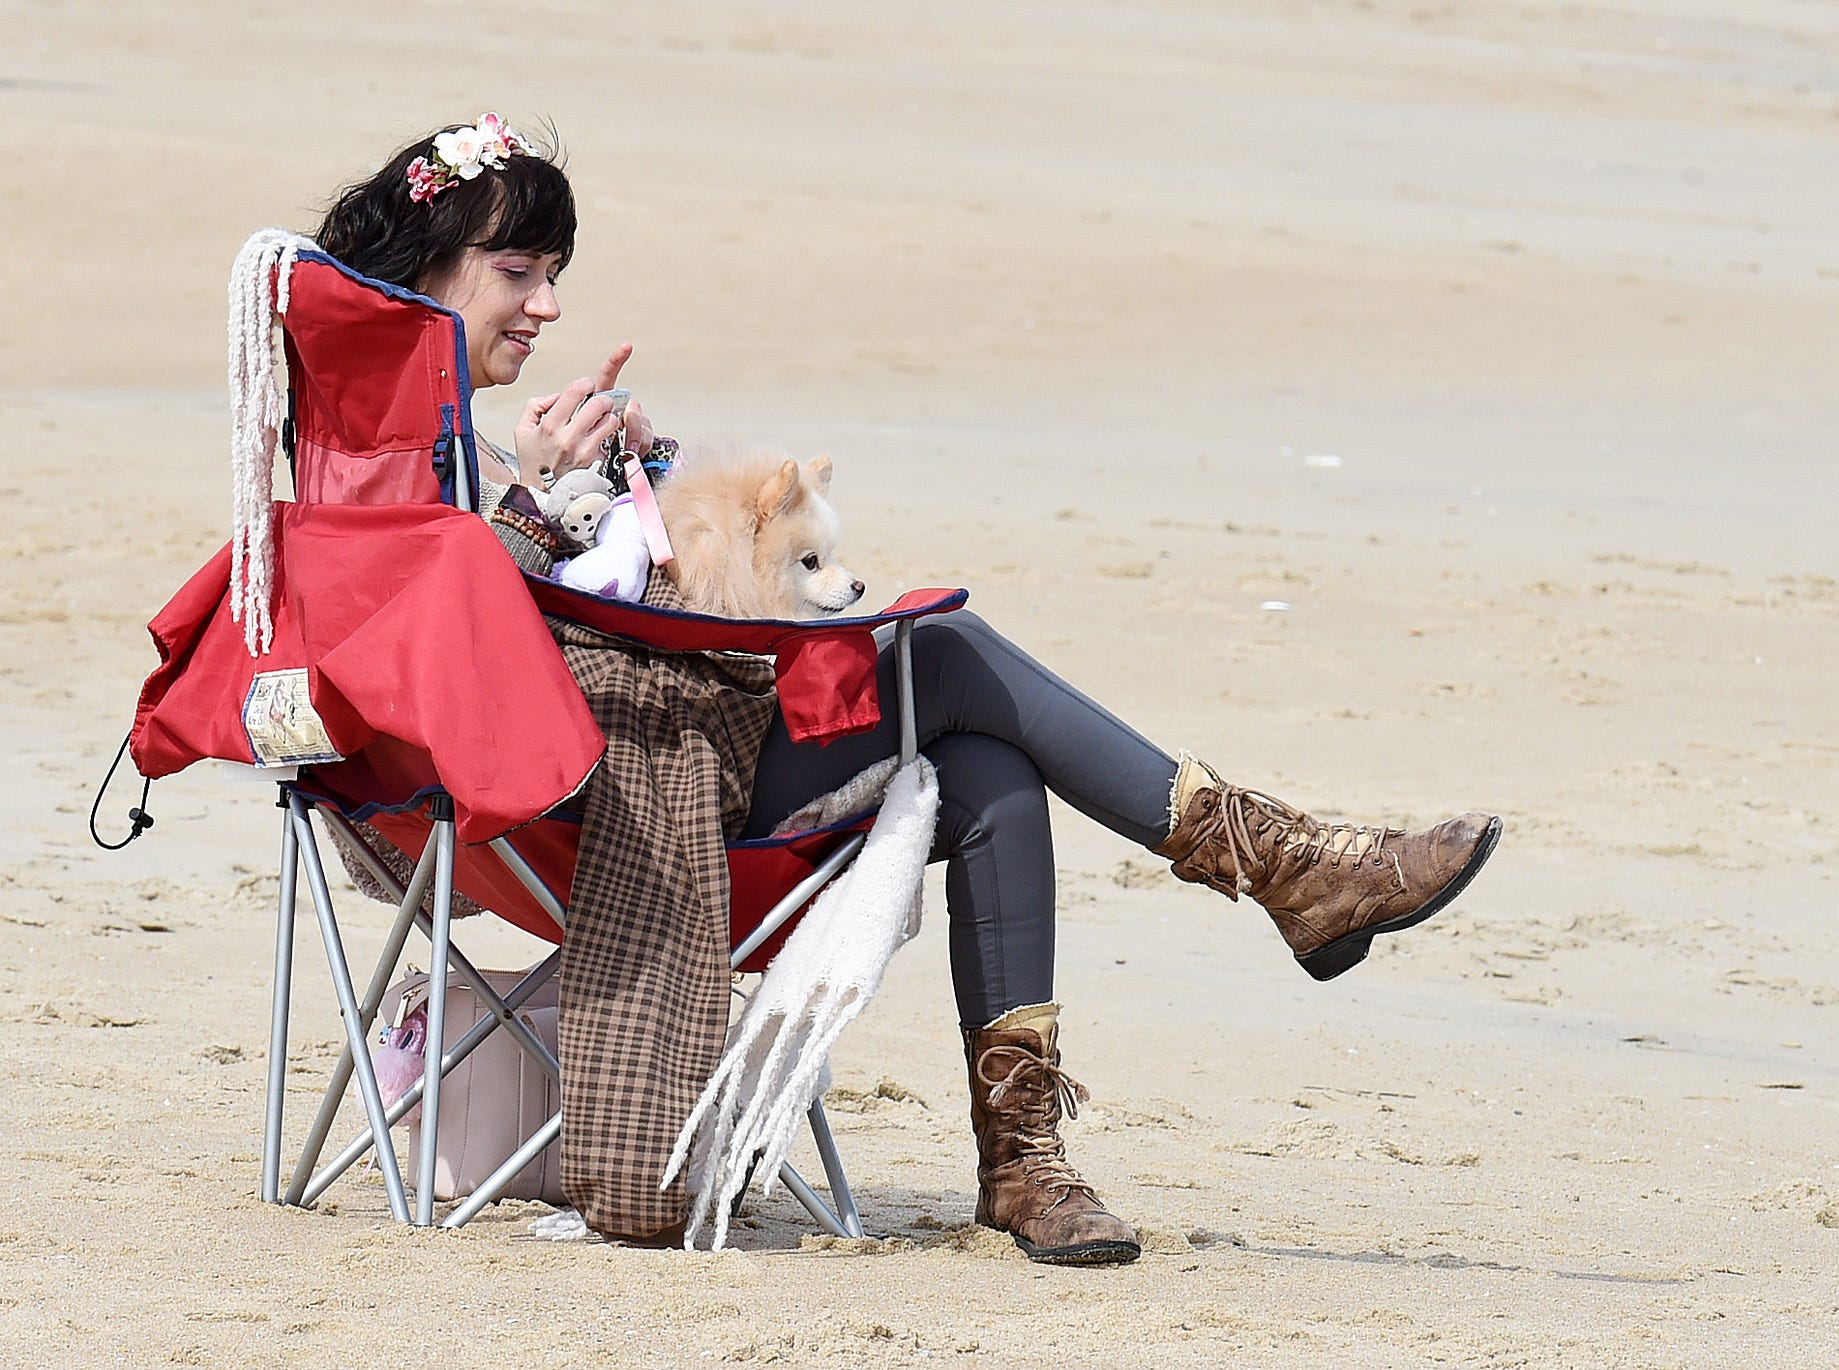 Lindsay Jenkins from Washington, D.C. enjoys the beach on 2019's first day of spring.